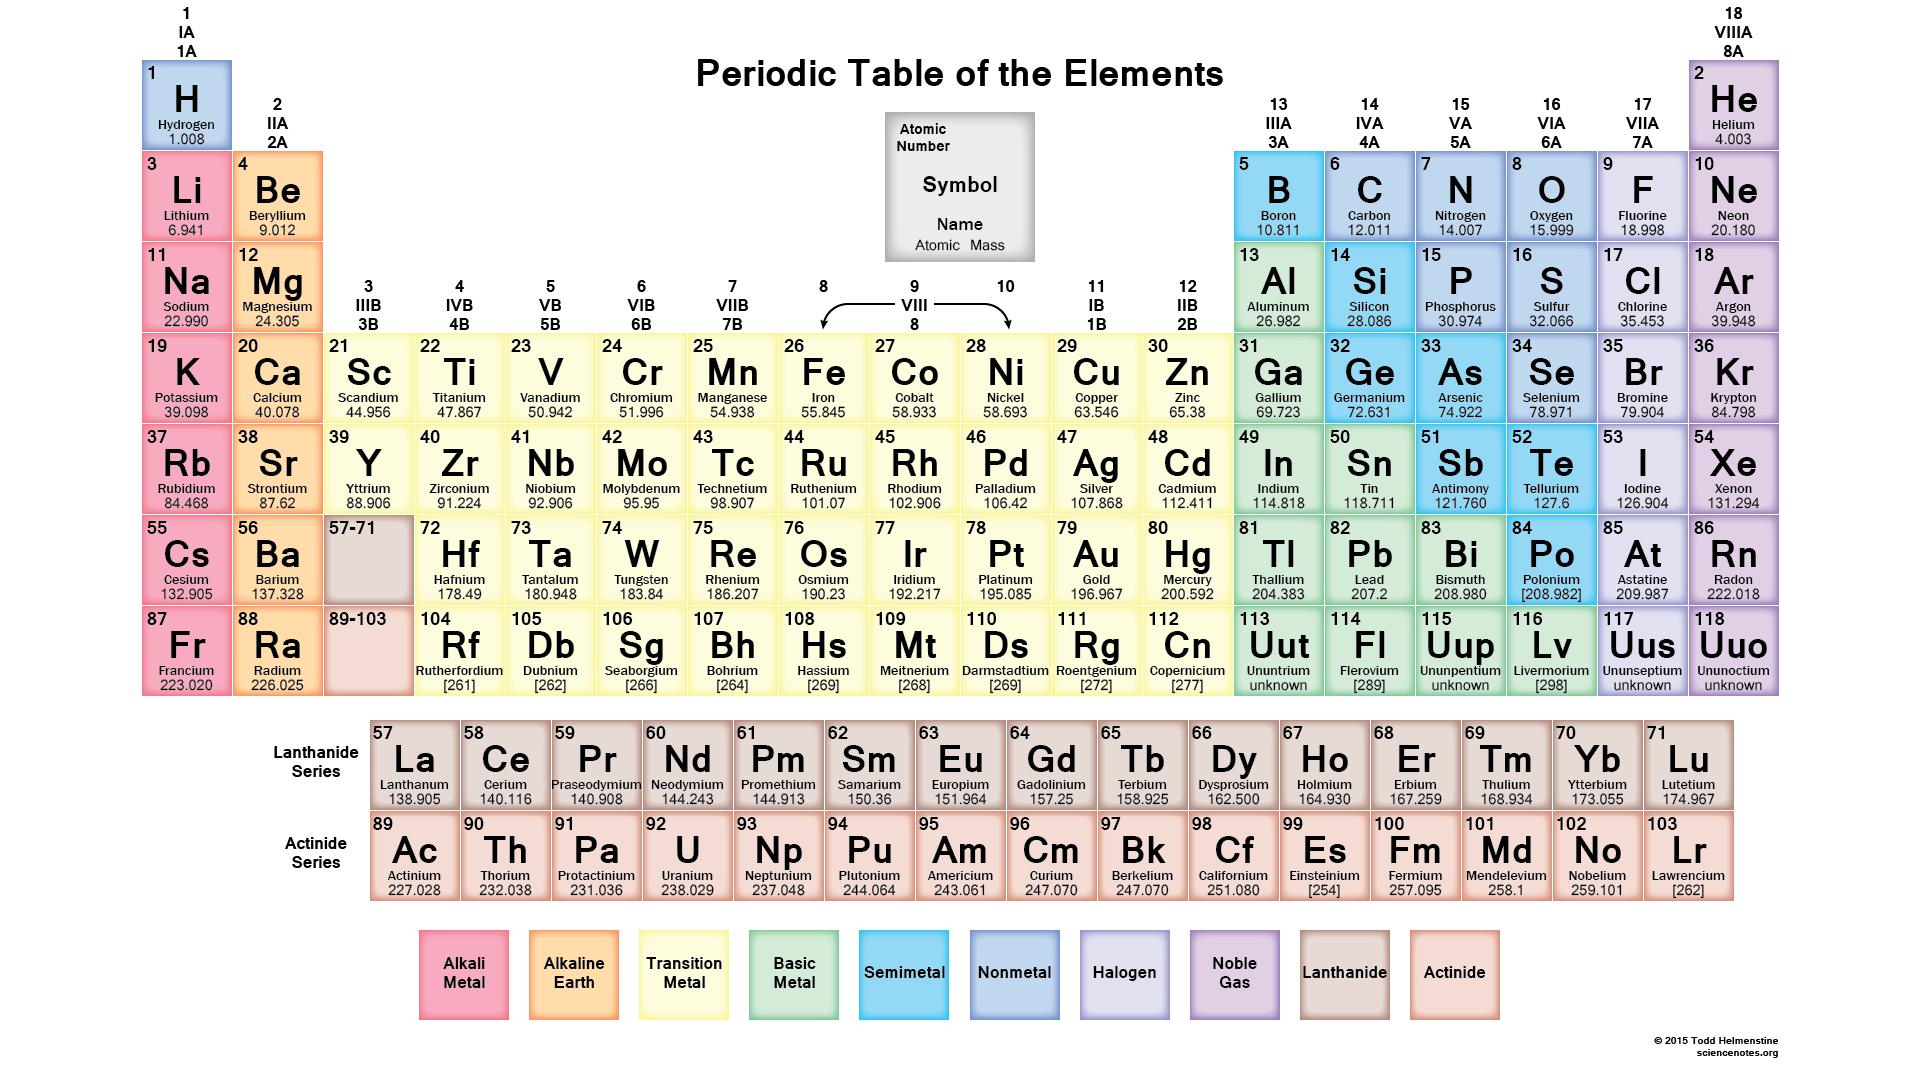 periodic table metals and non metals - Periodic Table Metals